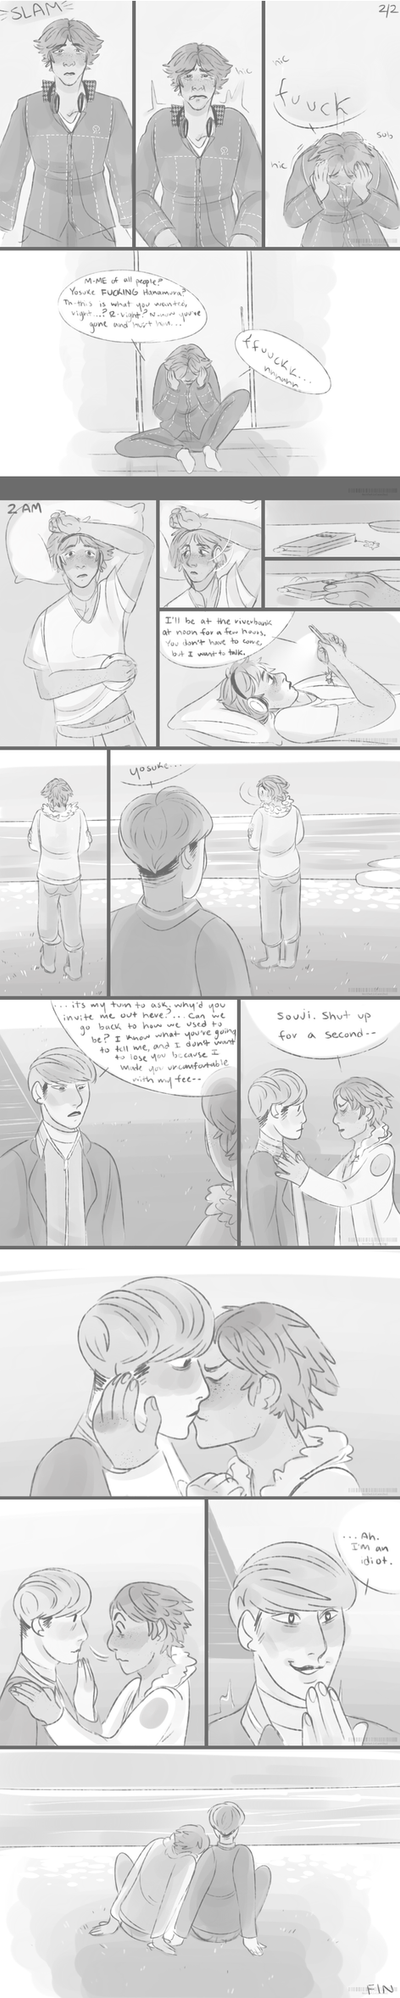 SouYo Confession Part 2 by AestheticCannibal